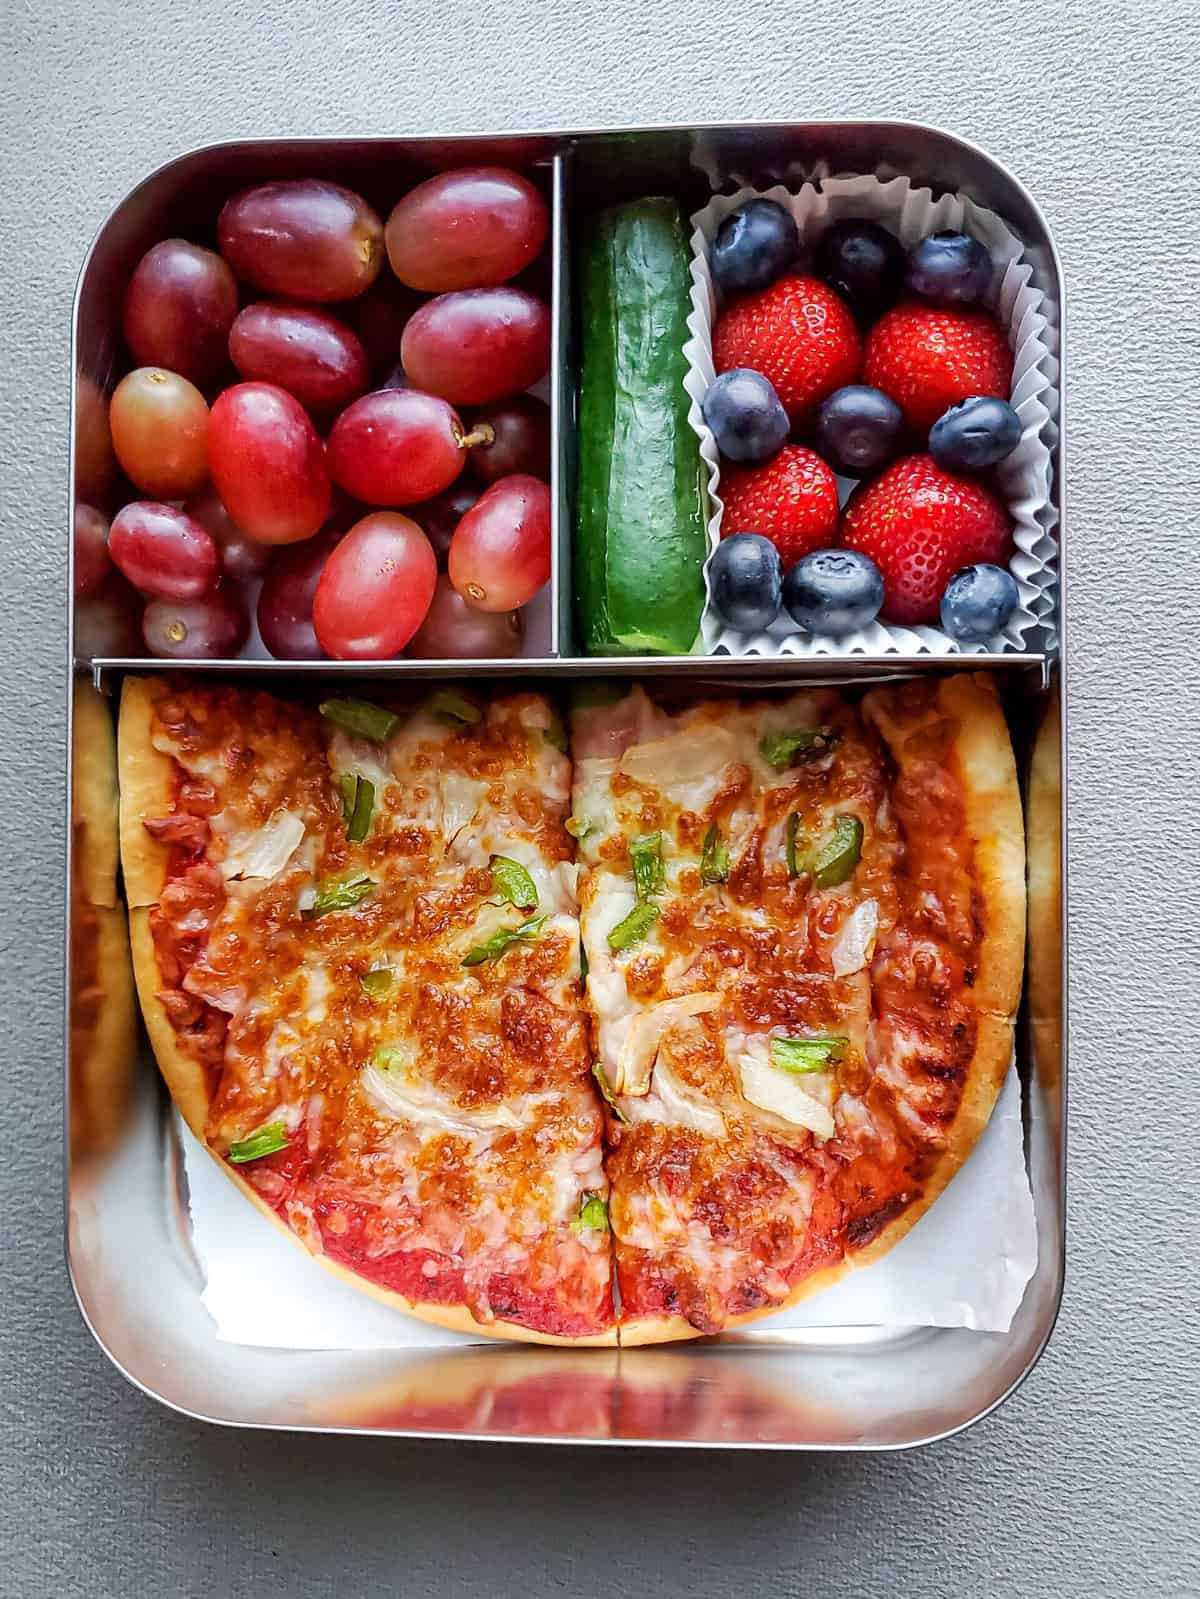 School lunch box with veggie Pita Bread Pizza, fruits and cucumber